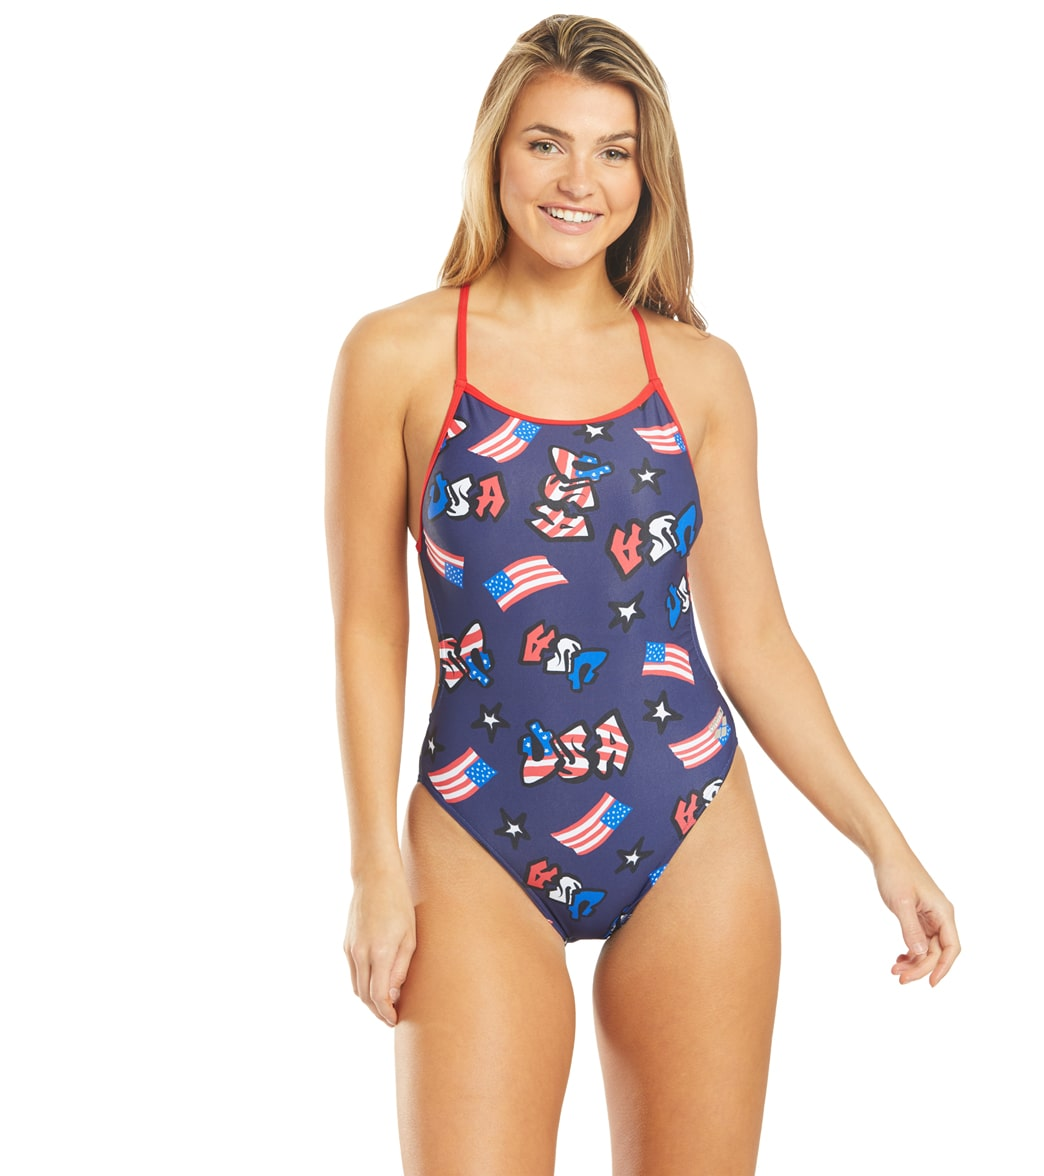 Arena Women's Graffiti Usa Booster Back One Piece Swimsuit